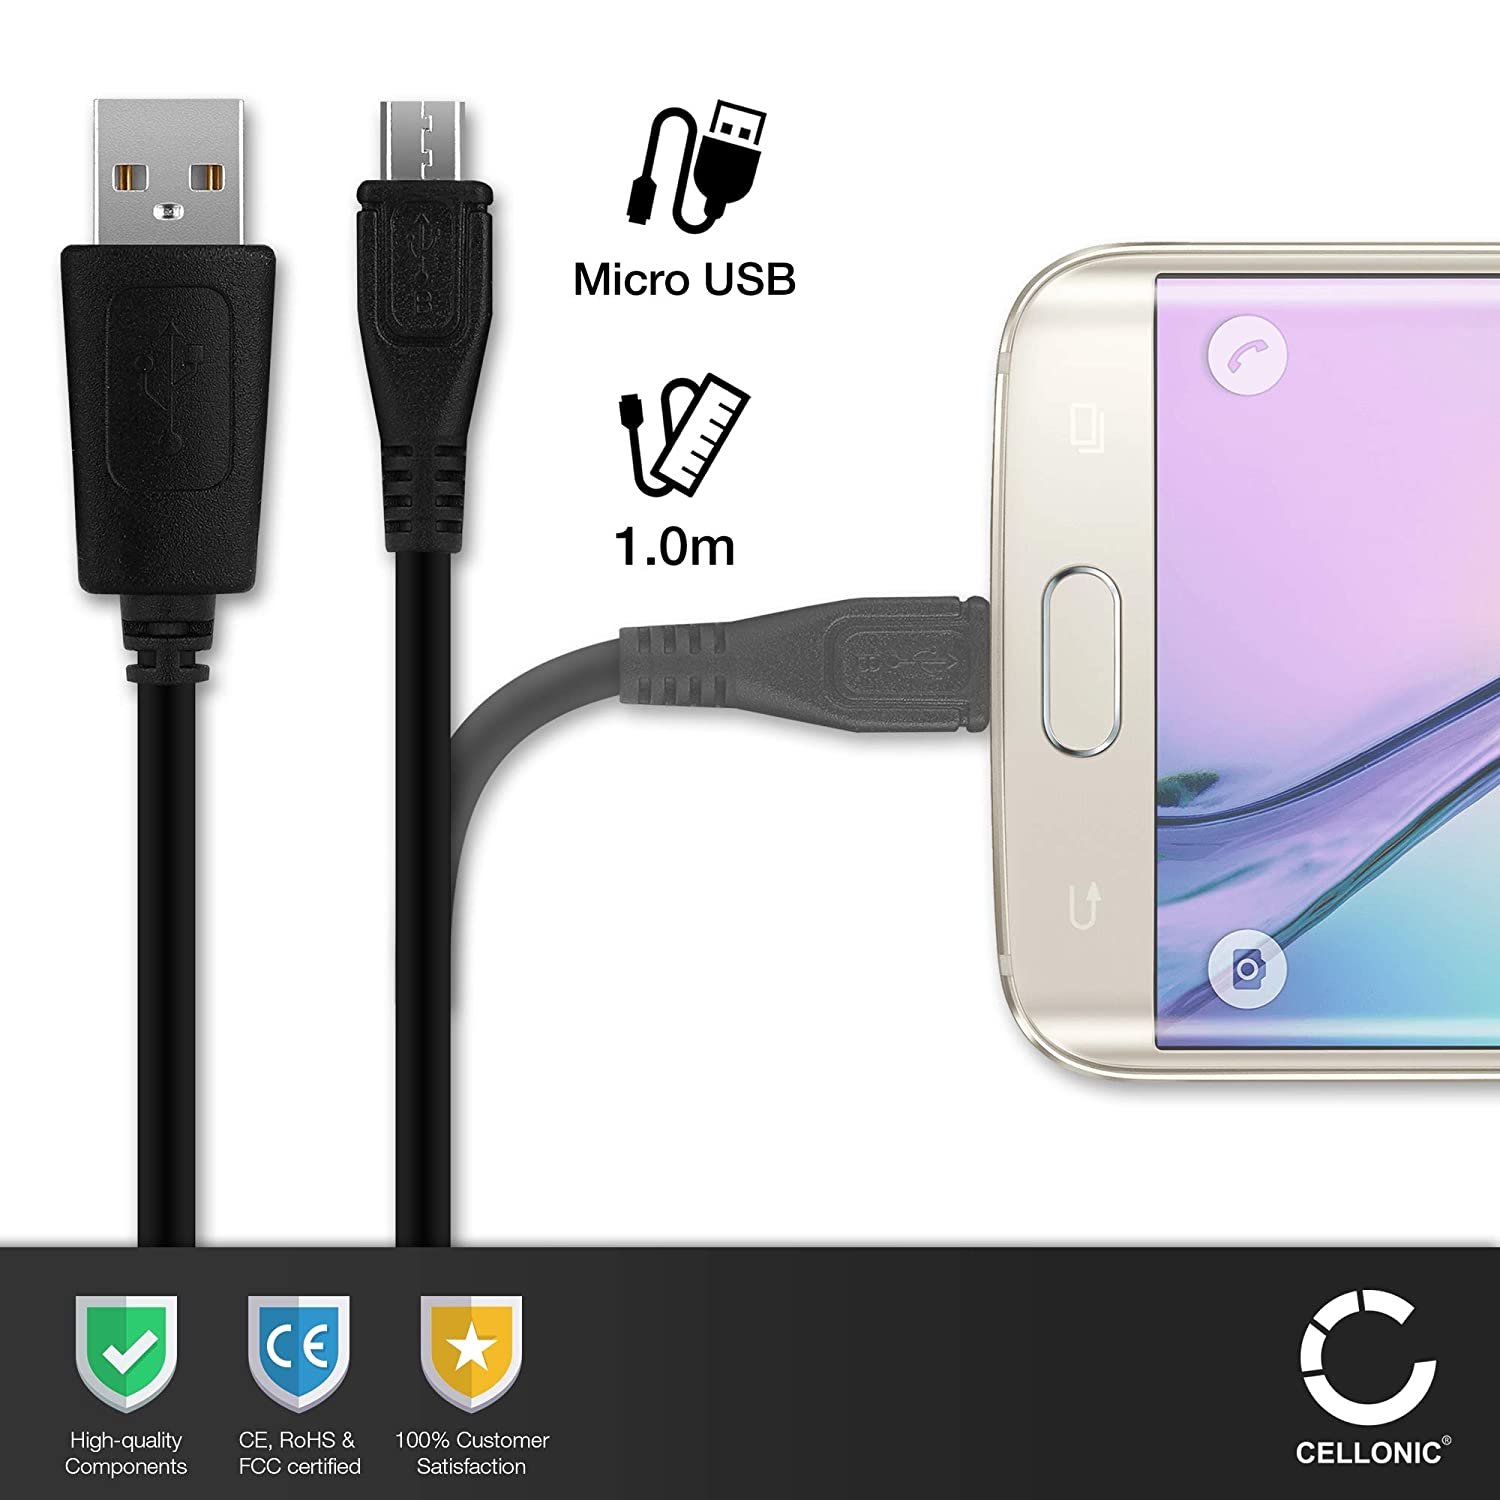 Micro USB a USB A 1m Compatible con Acer Iconia A1 // A3 // B1 // One 7 // One 8 // One 10 // Tab 7 // Tab 8 // Tab 10 // W1 // W4 Standard USB Cable de Carga Negro CELLONIC/® Cable USB dato